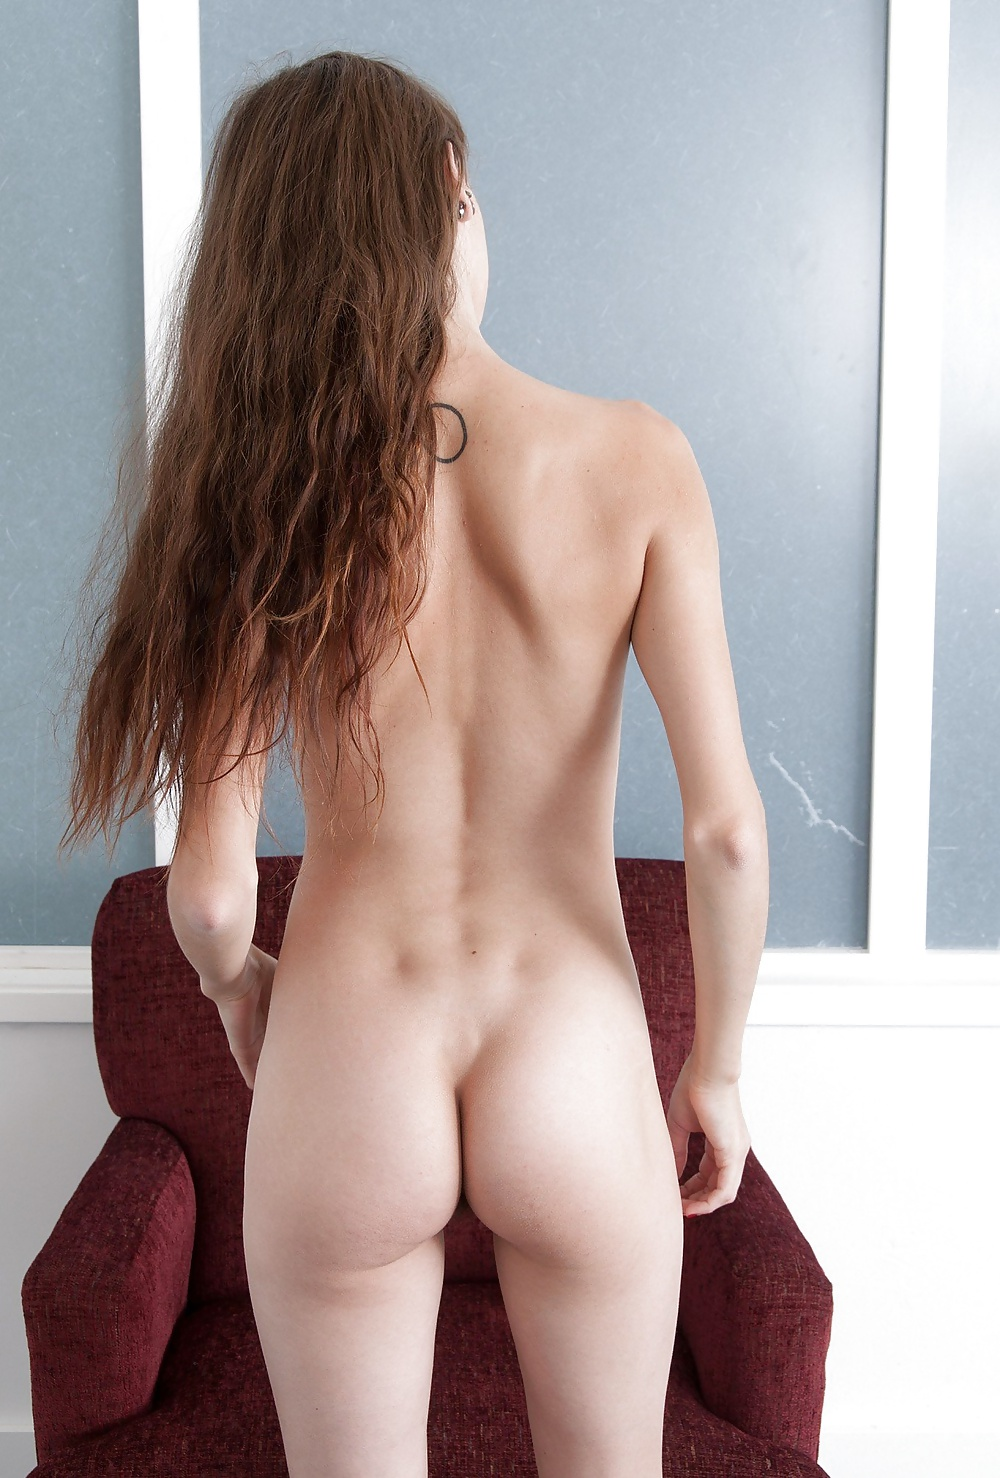 tiny-girl-asses-nude-drawn-together-princess-clara-porn